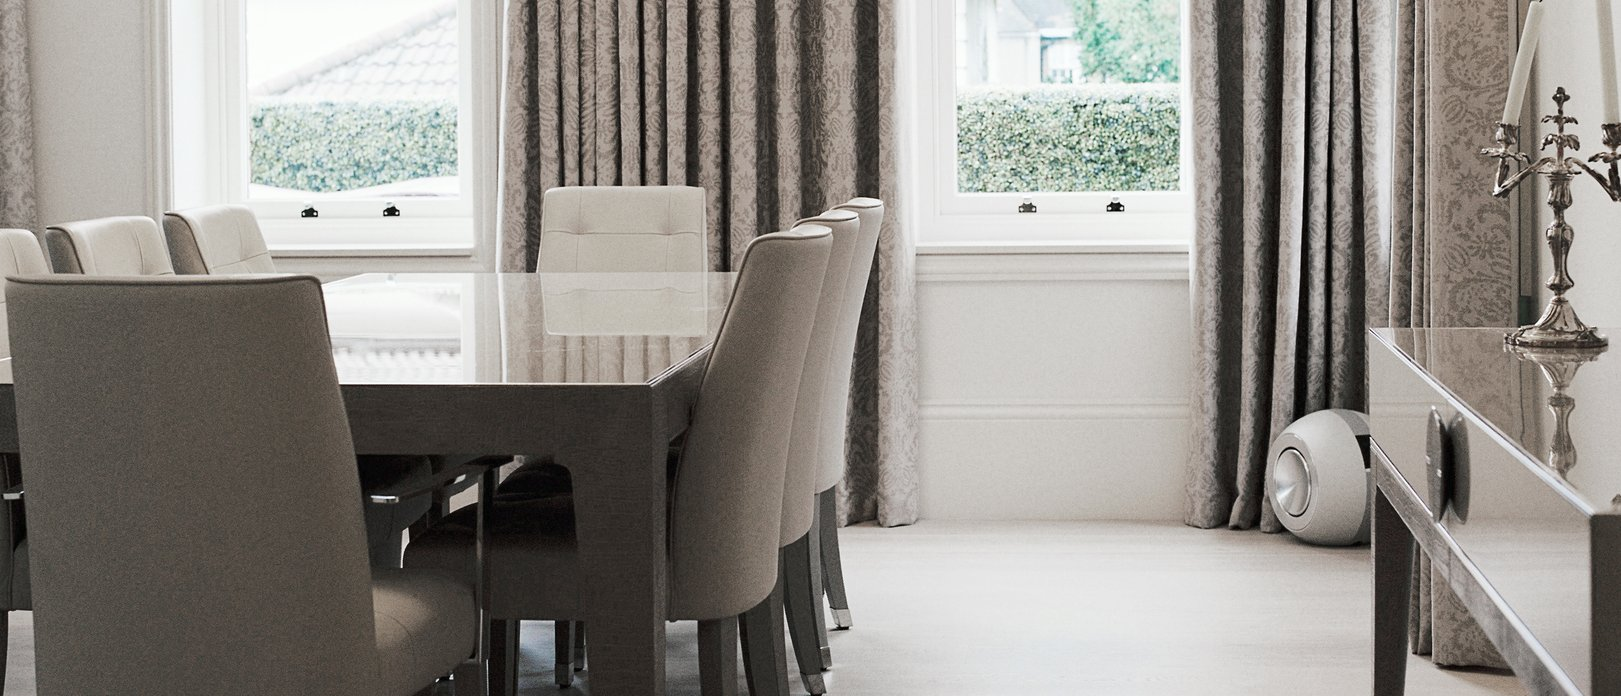 London's Design: Interview with Vega Home